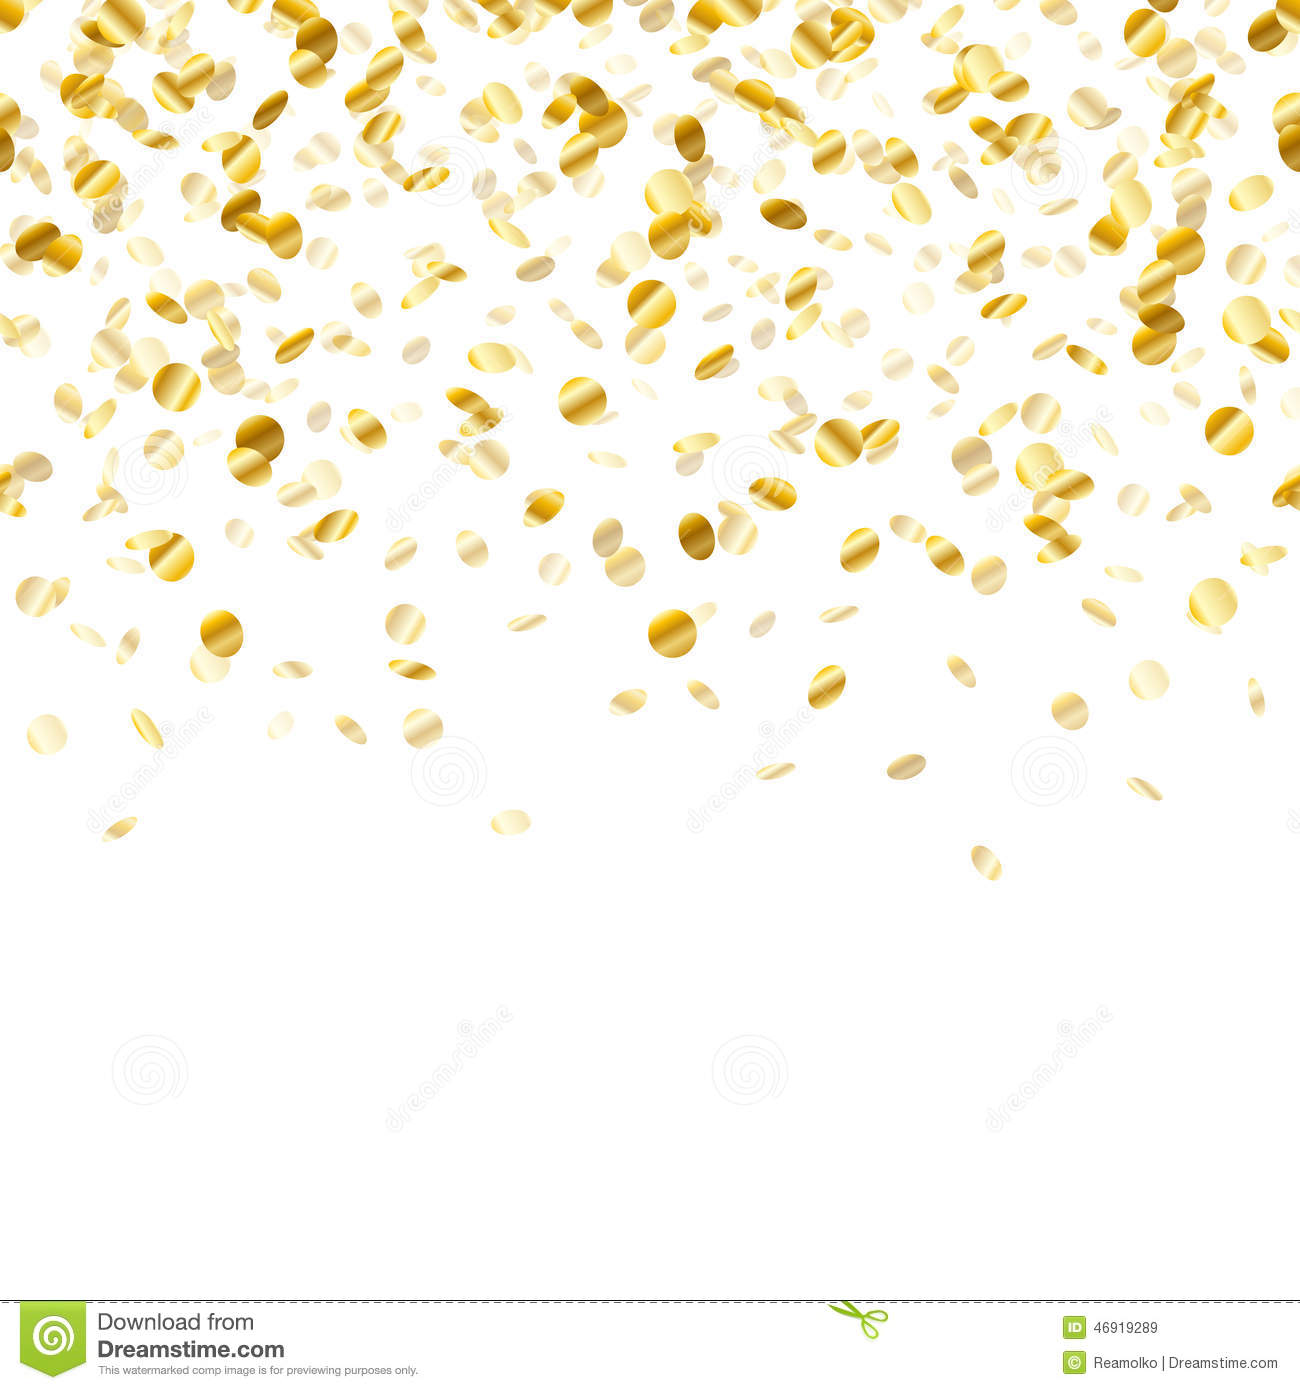 3d Falling Leaves Animated Wallpaper Free Download Golden Confetti Background Seamless Horizontal Stock